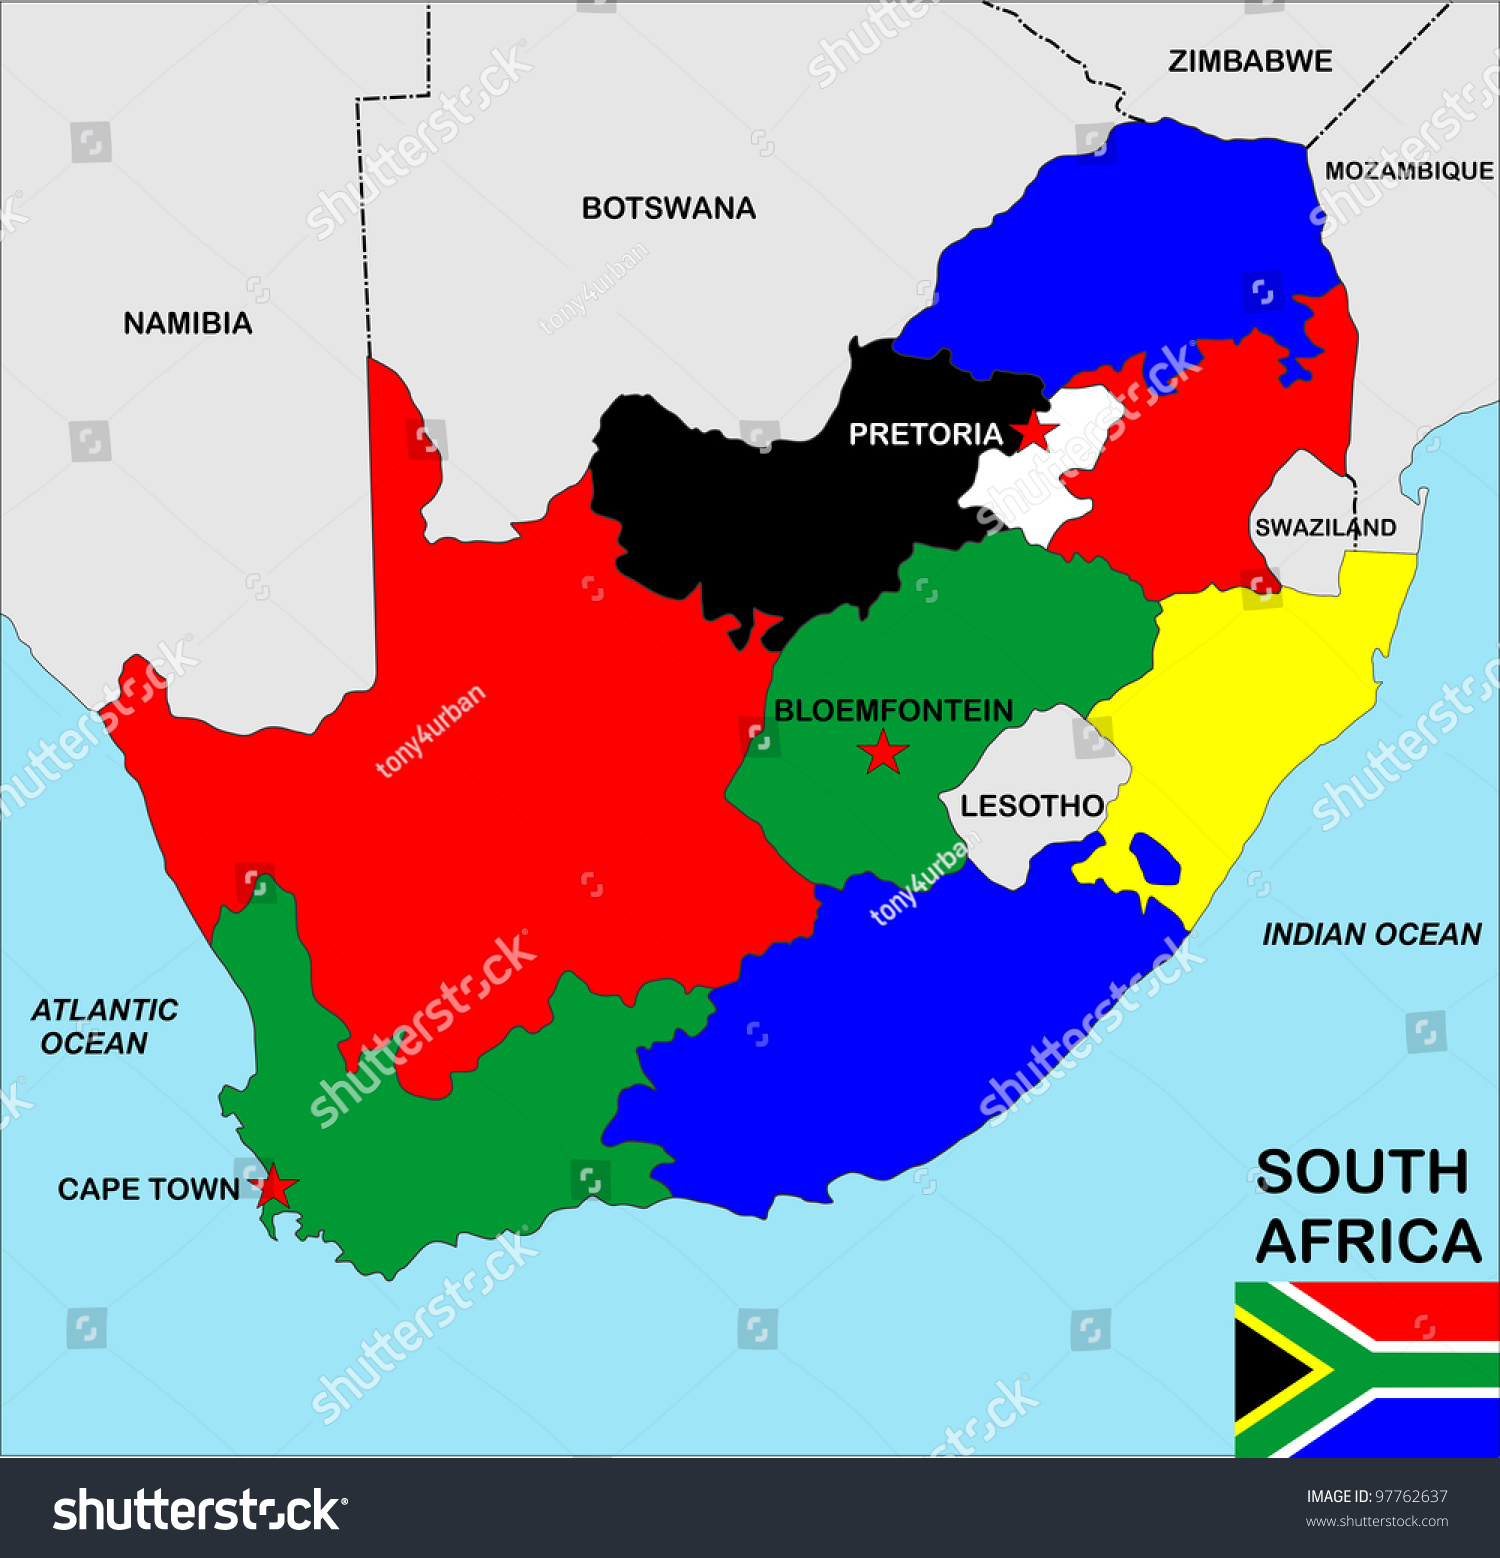 Big size political map south africa ilustracin de stock97762637 big size political map of south africa with flag gumiabroncs Gallery